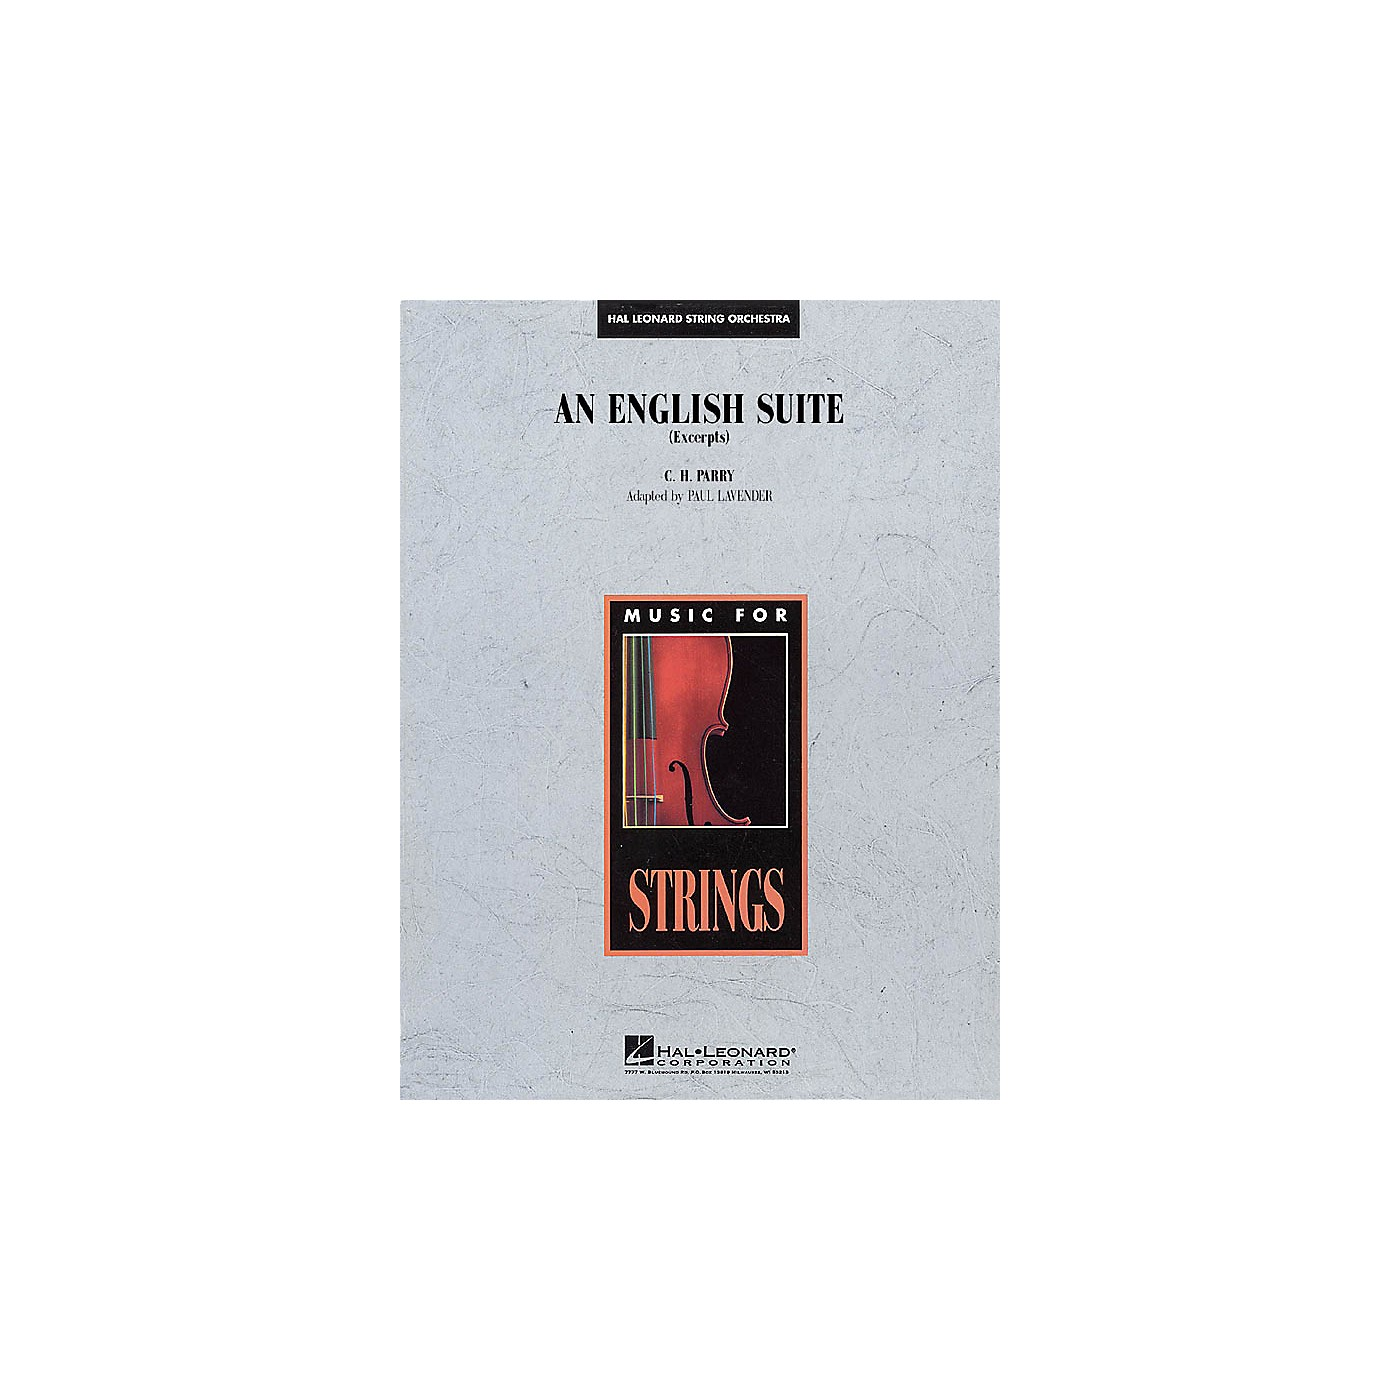 Hal Leonard An English Suite (Excerpts) Music for String Orchestra Series Arranged by Paul Lavender thumbnail